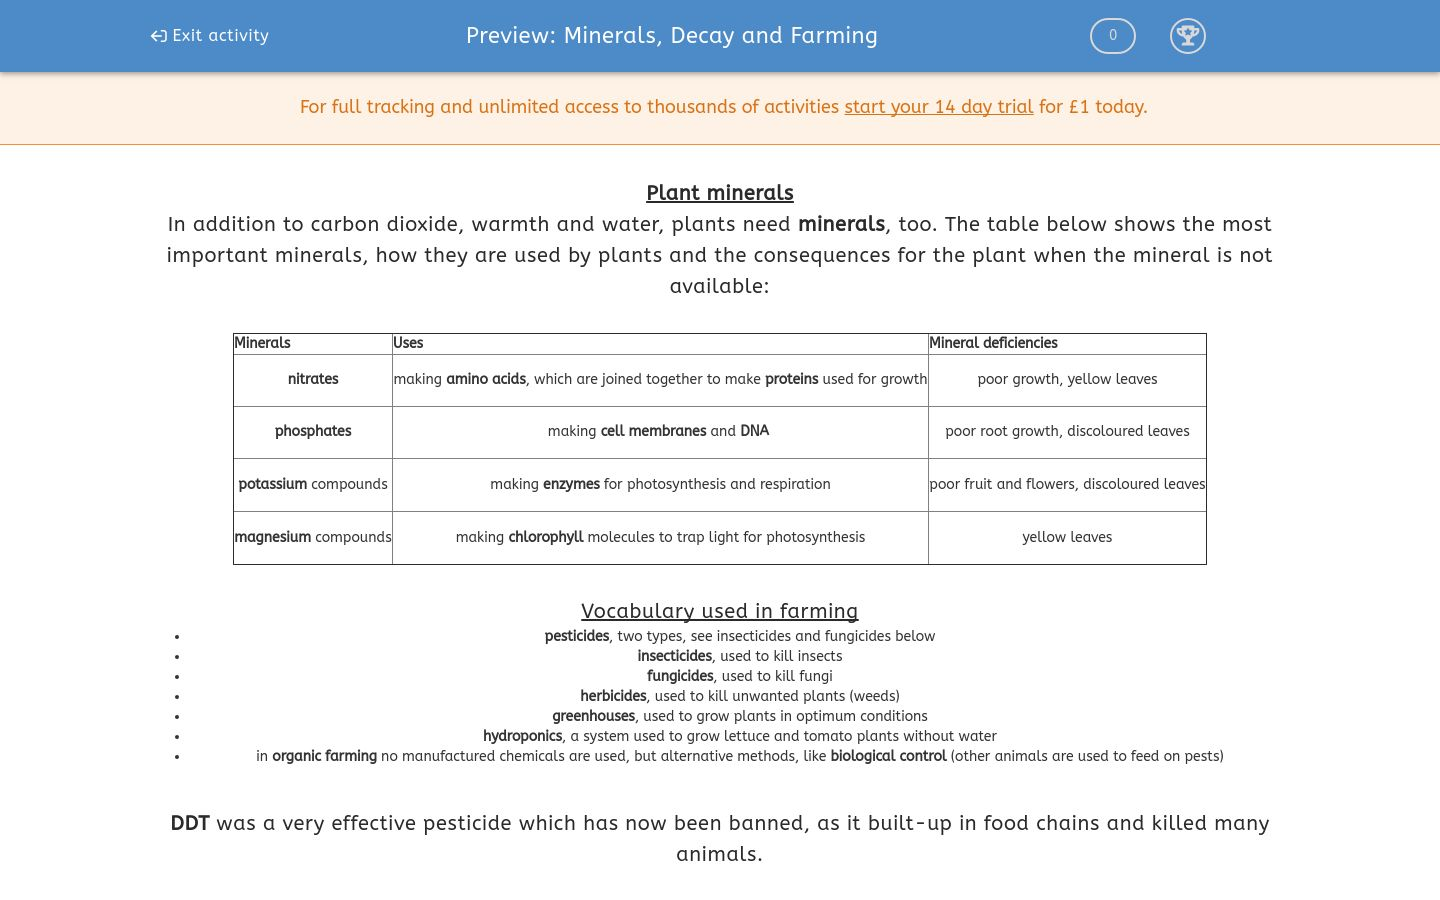 'Minerals, Decay and Farming' worksheet